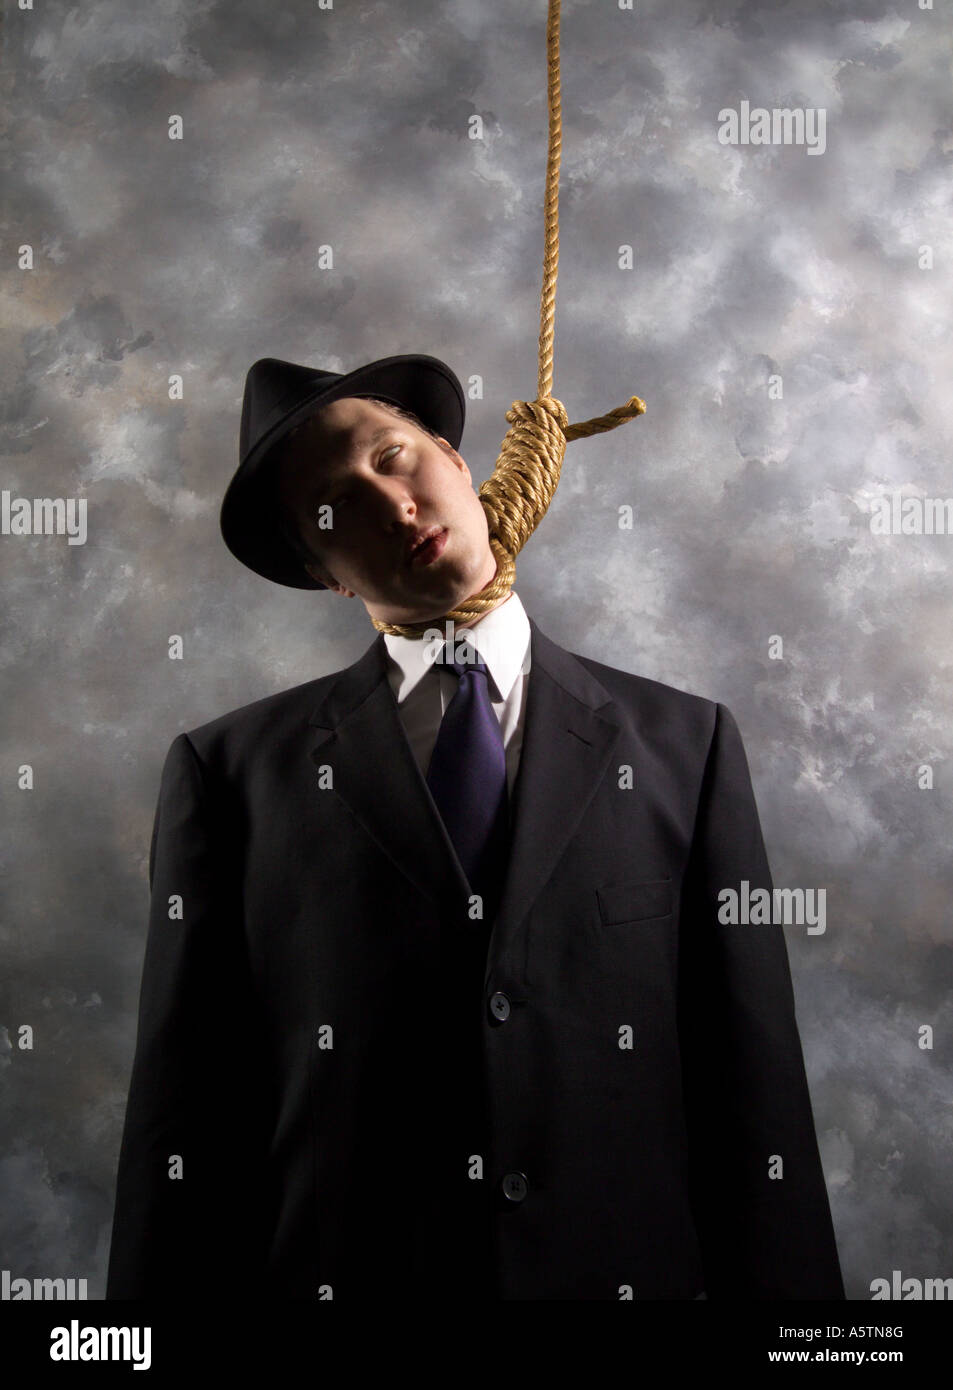 The Hanged Man Predictive Tarot Card Meanings: Hanged Man Stock Photos & Hanged Man Stock Images